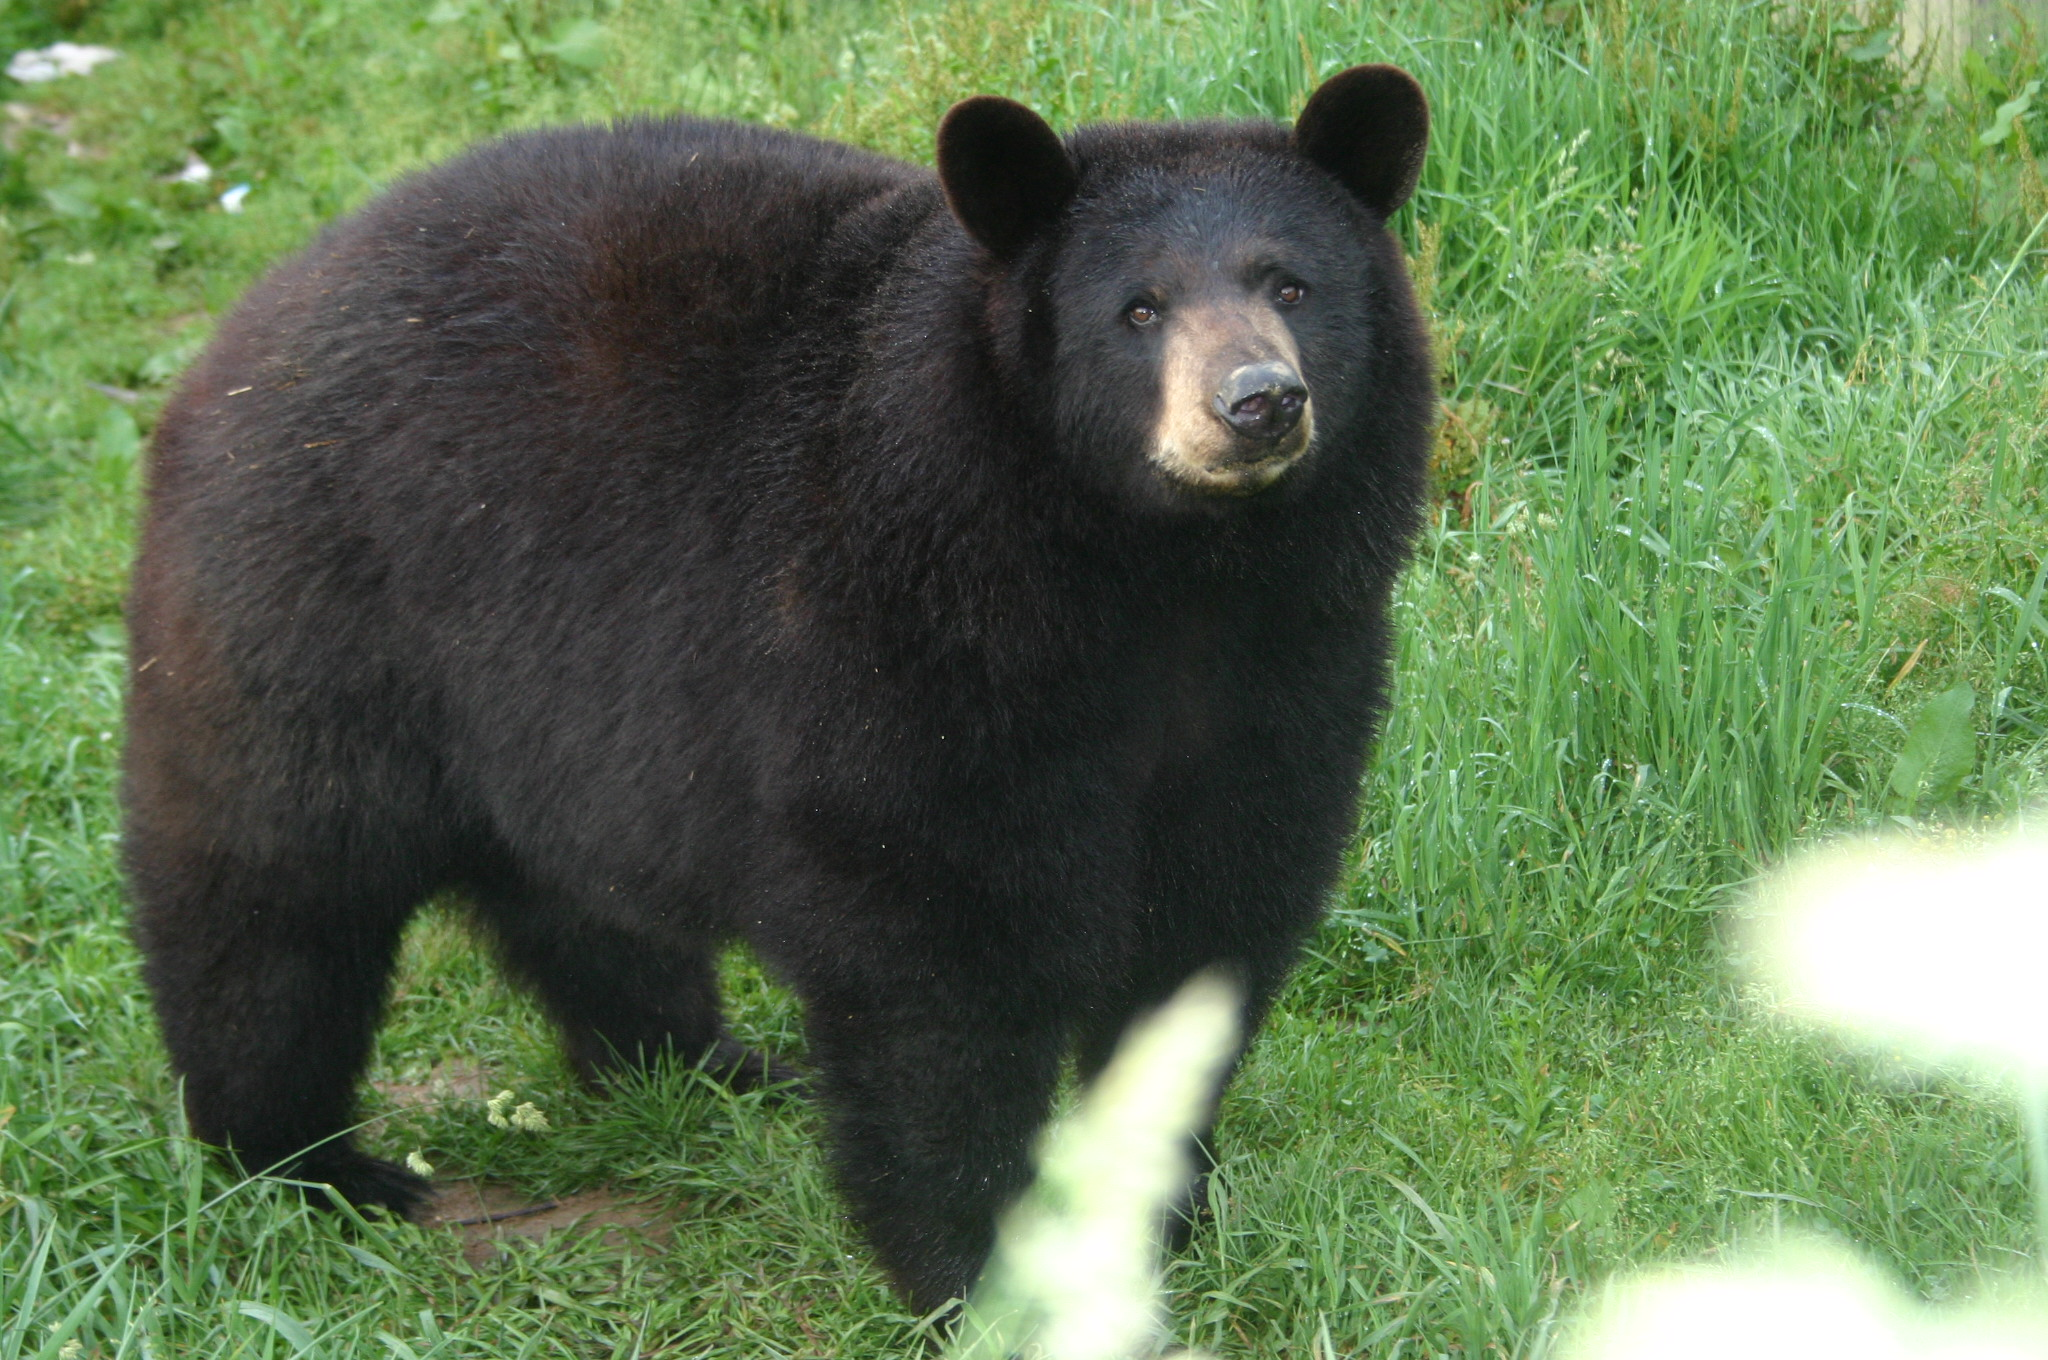 sybil the black bear